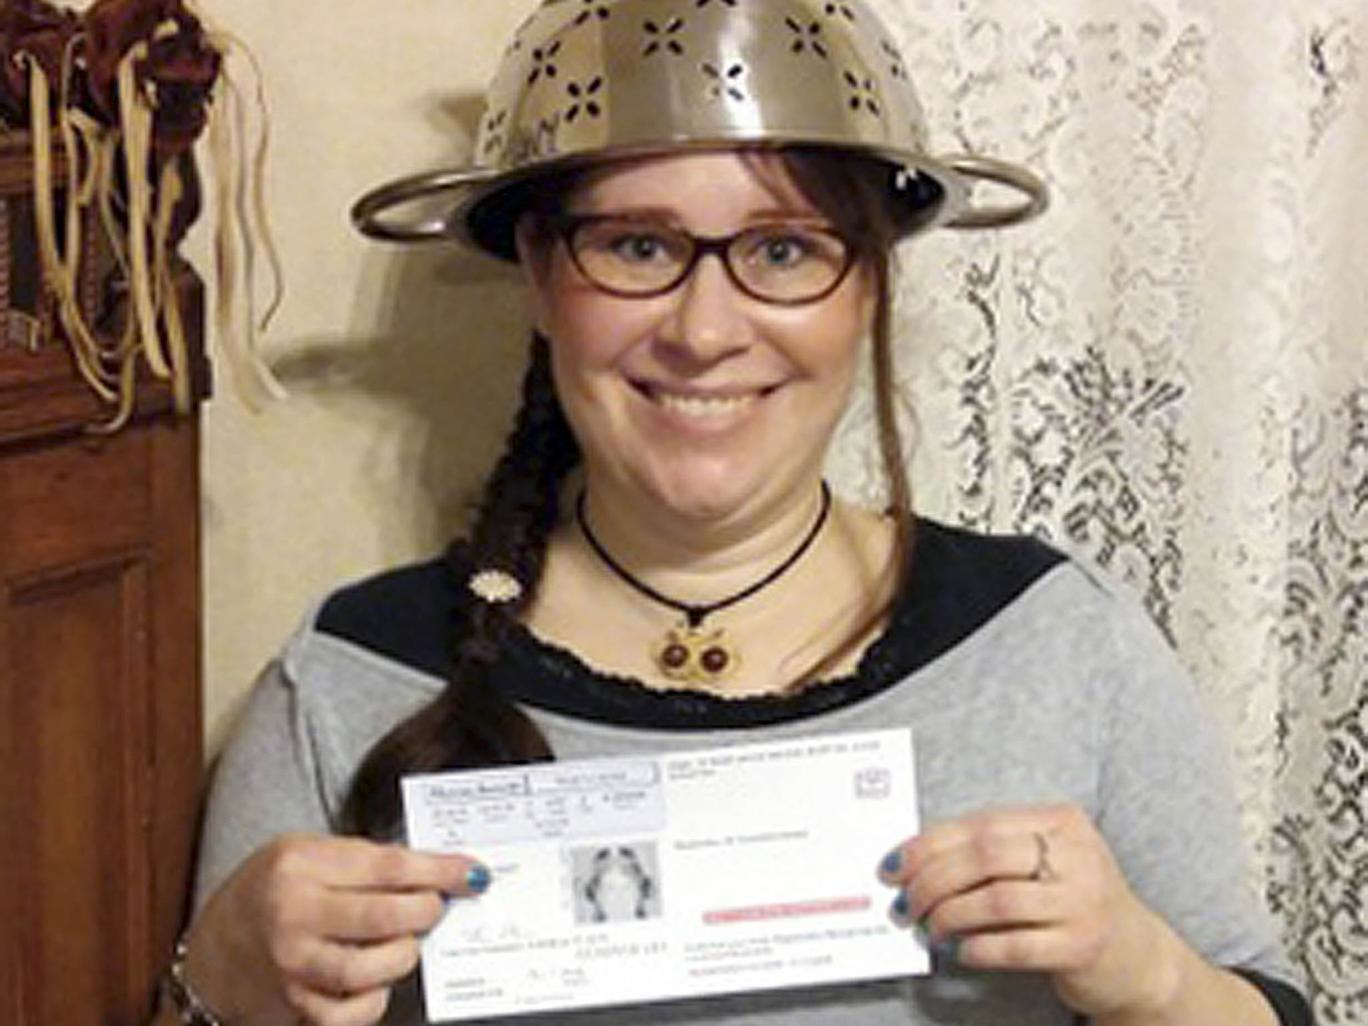 UNILAD pasta head 165030 Woman Allowed To Wear Pasta Strainer On Head In Driving License Photo On Religious Grounds